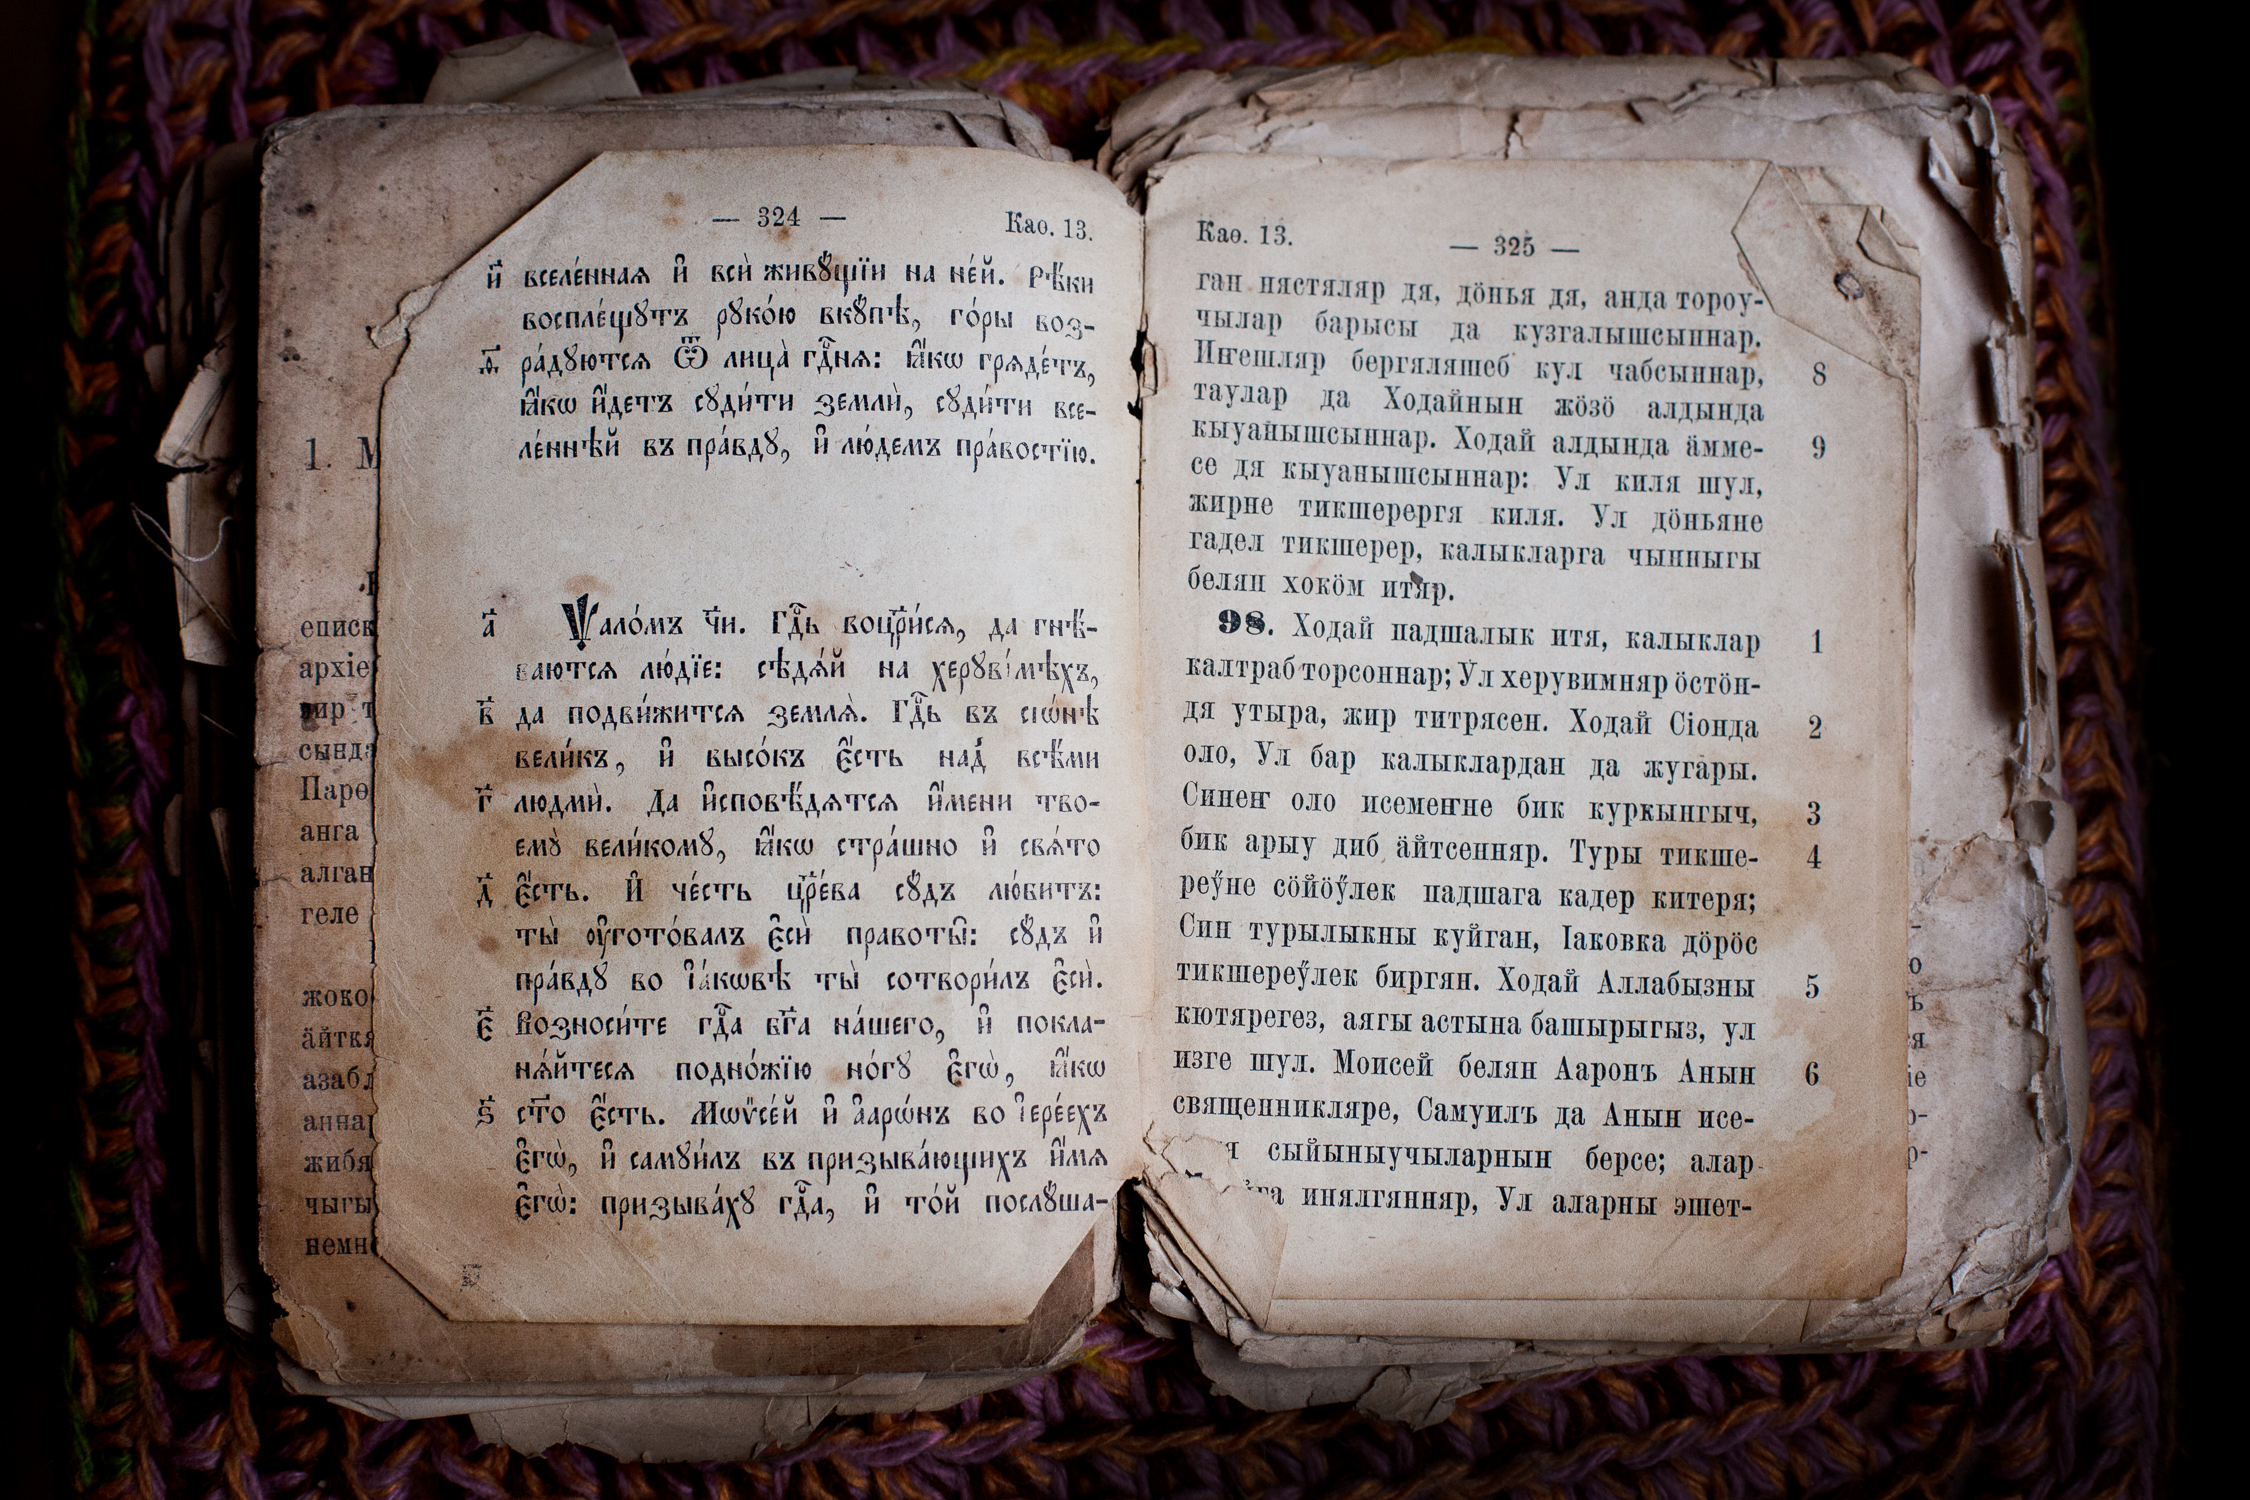 A dual-language bible, Kryashen on the left and Tatar on the right.